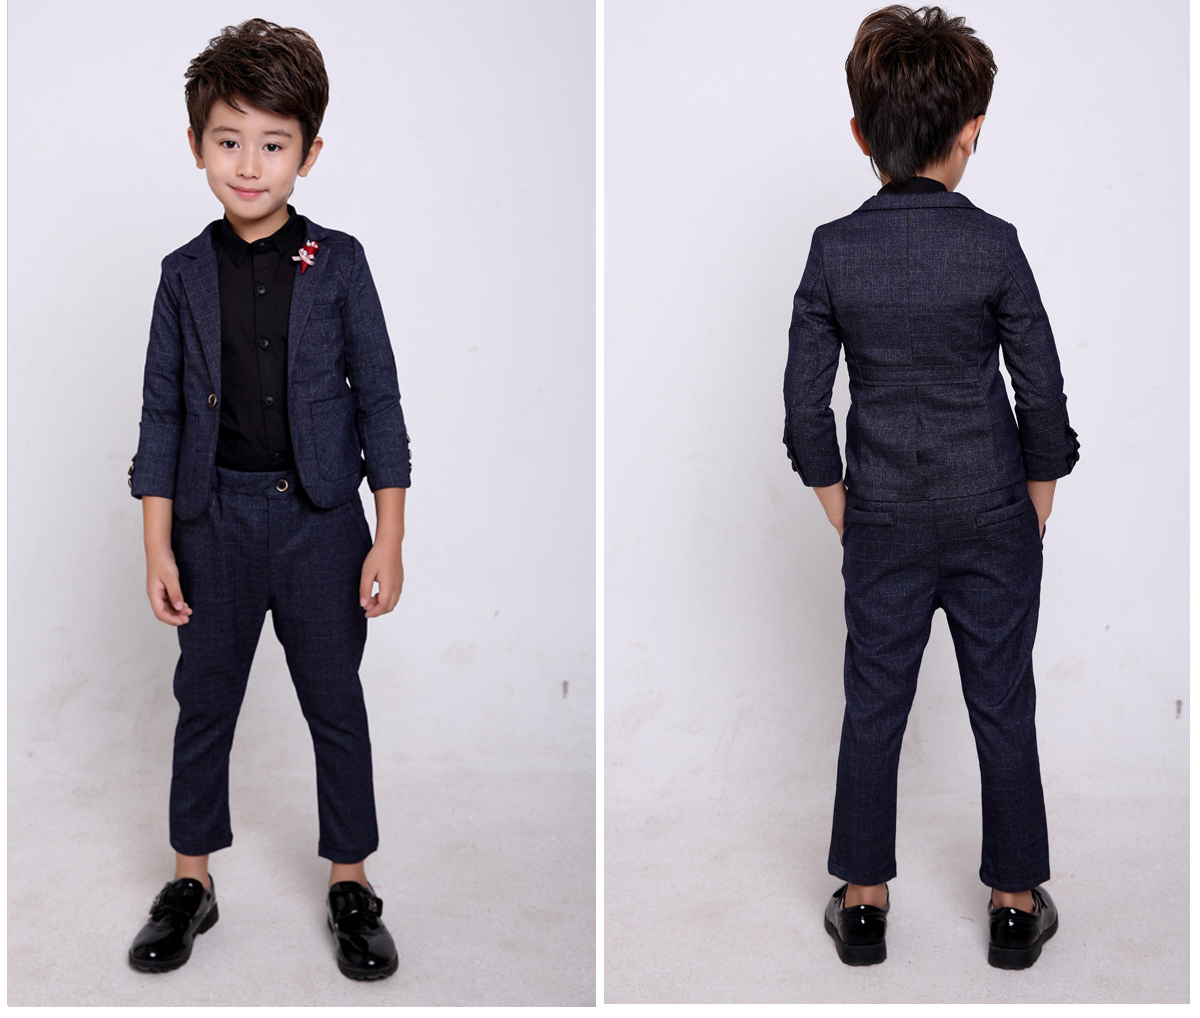 2018 new arrival fashion baby boys kids blazers boy suit for weddings prom formal dress wedding boy suits School Birthday Party high quality school uniform new fashion baby boys kids blazers boy suit for weddings prom formal gray dress wedding boy suits